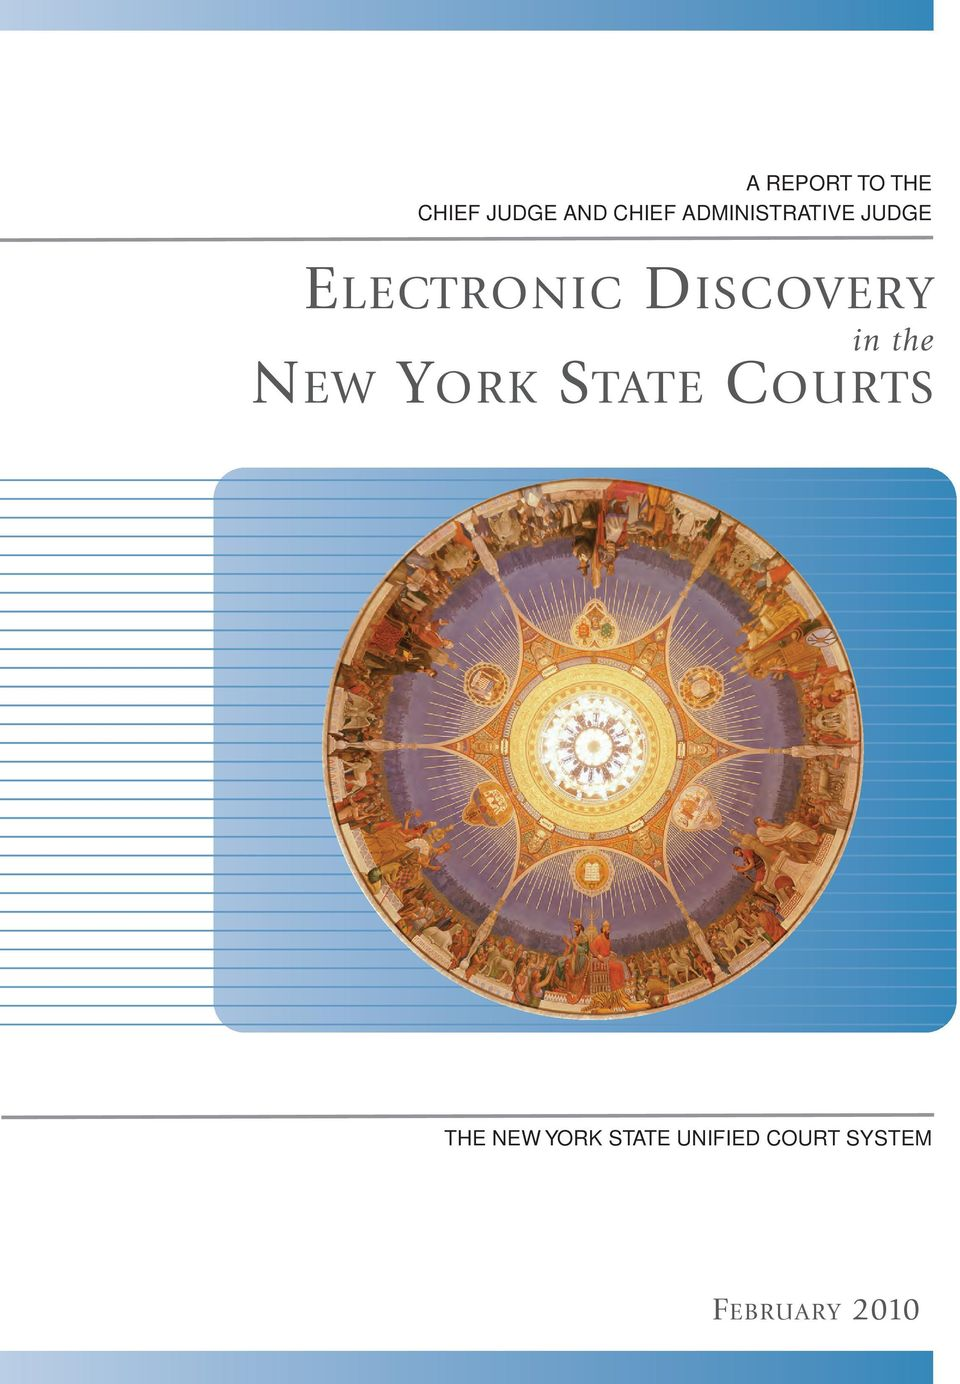 DISCOVERY in the NEW YORK STATE COURTS